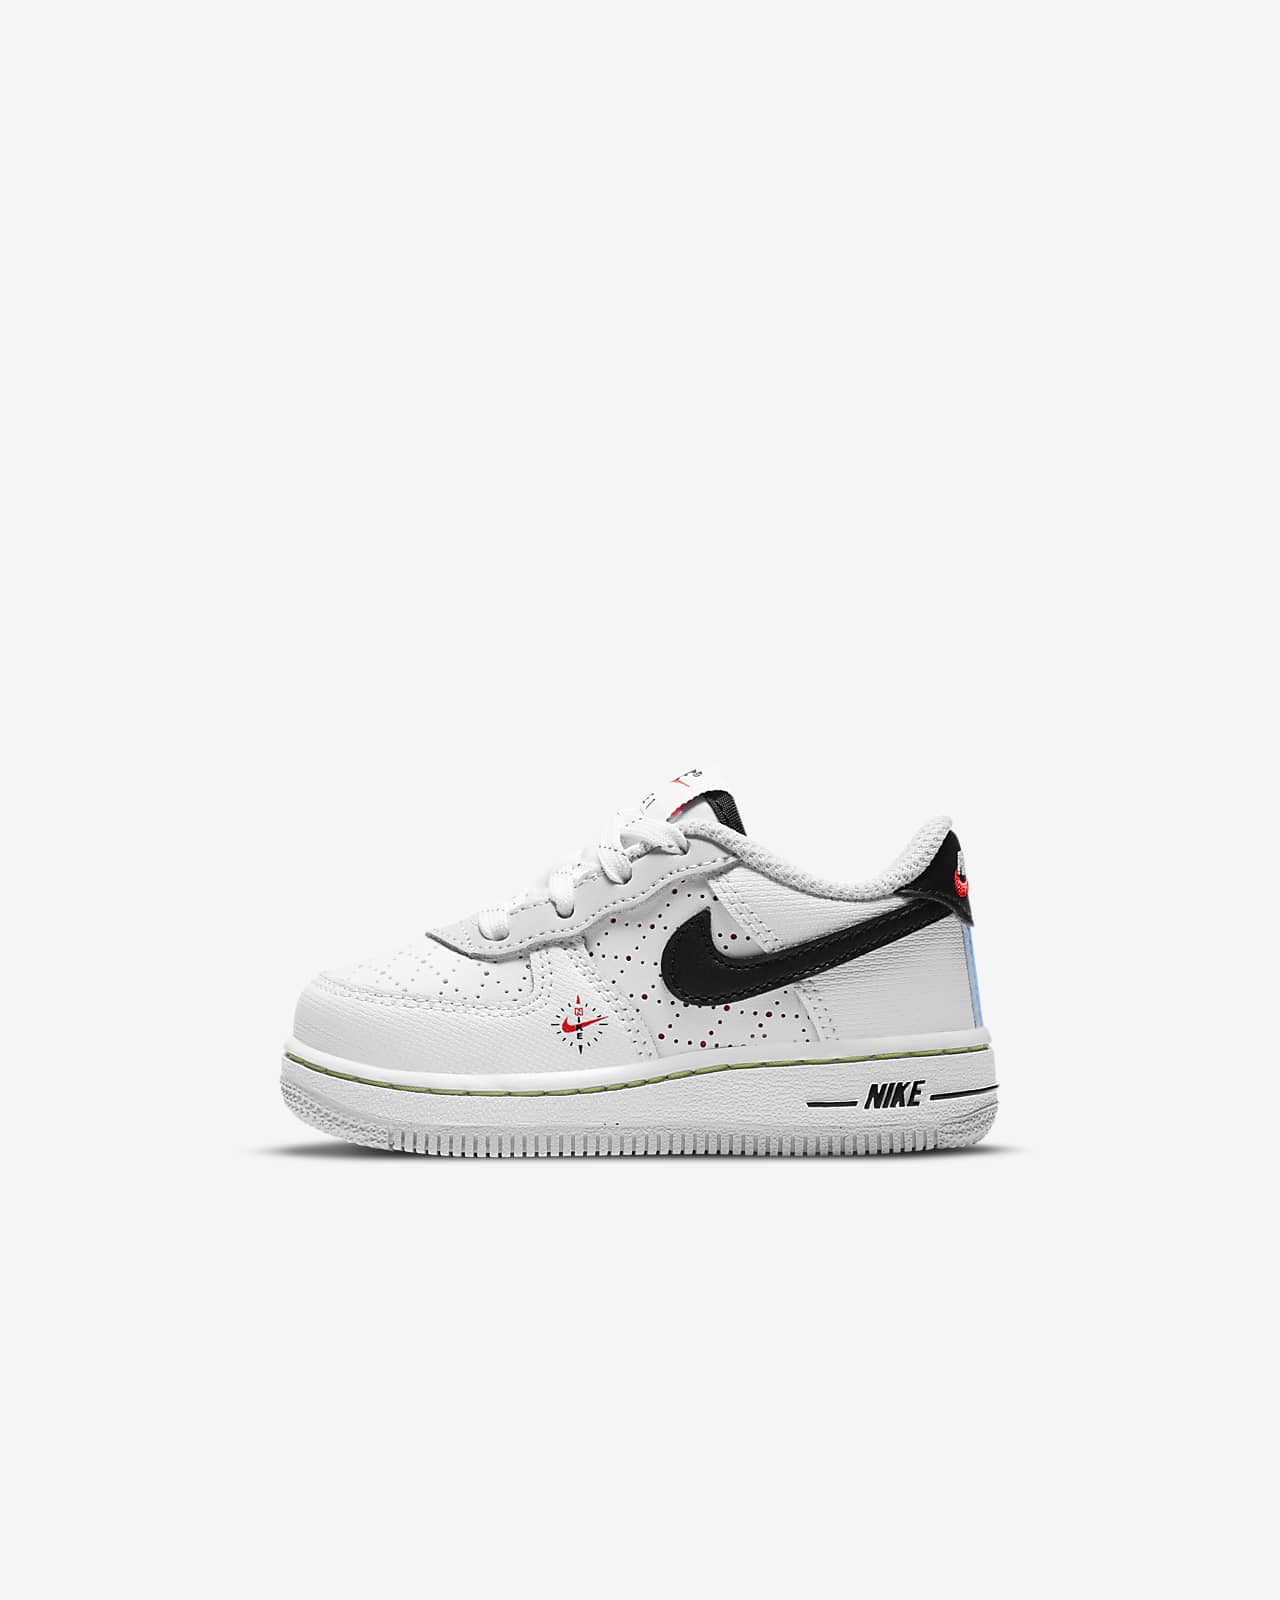 Nike Force 1 LV8 Baby/Toddler Shoe